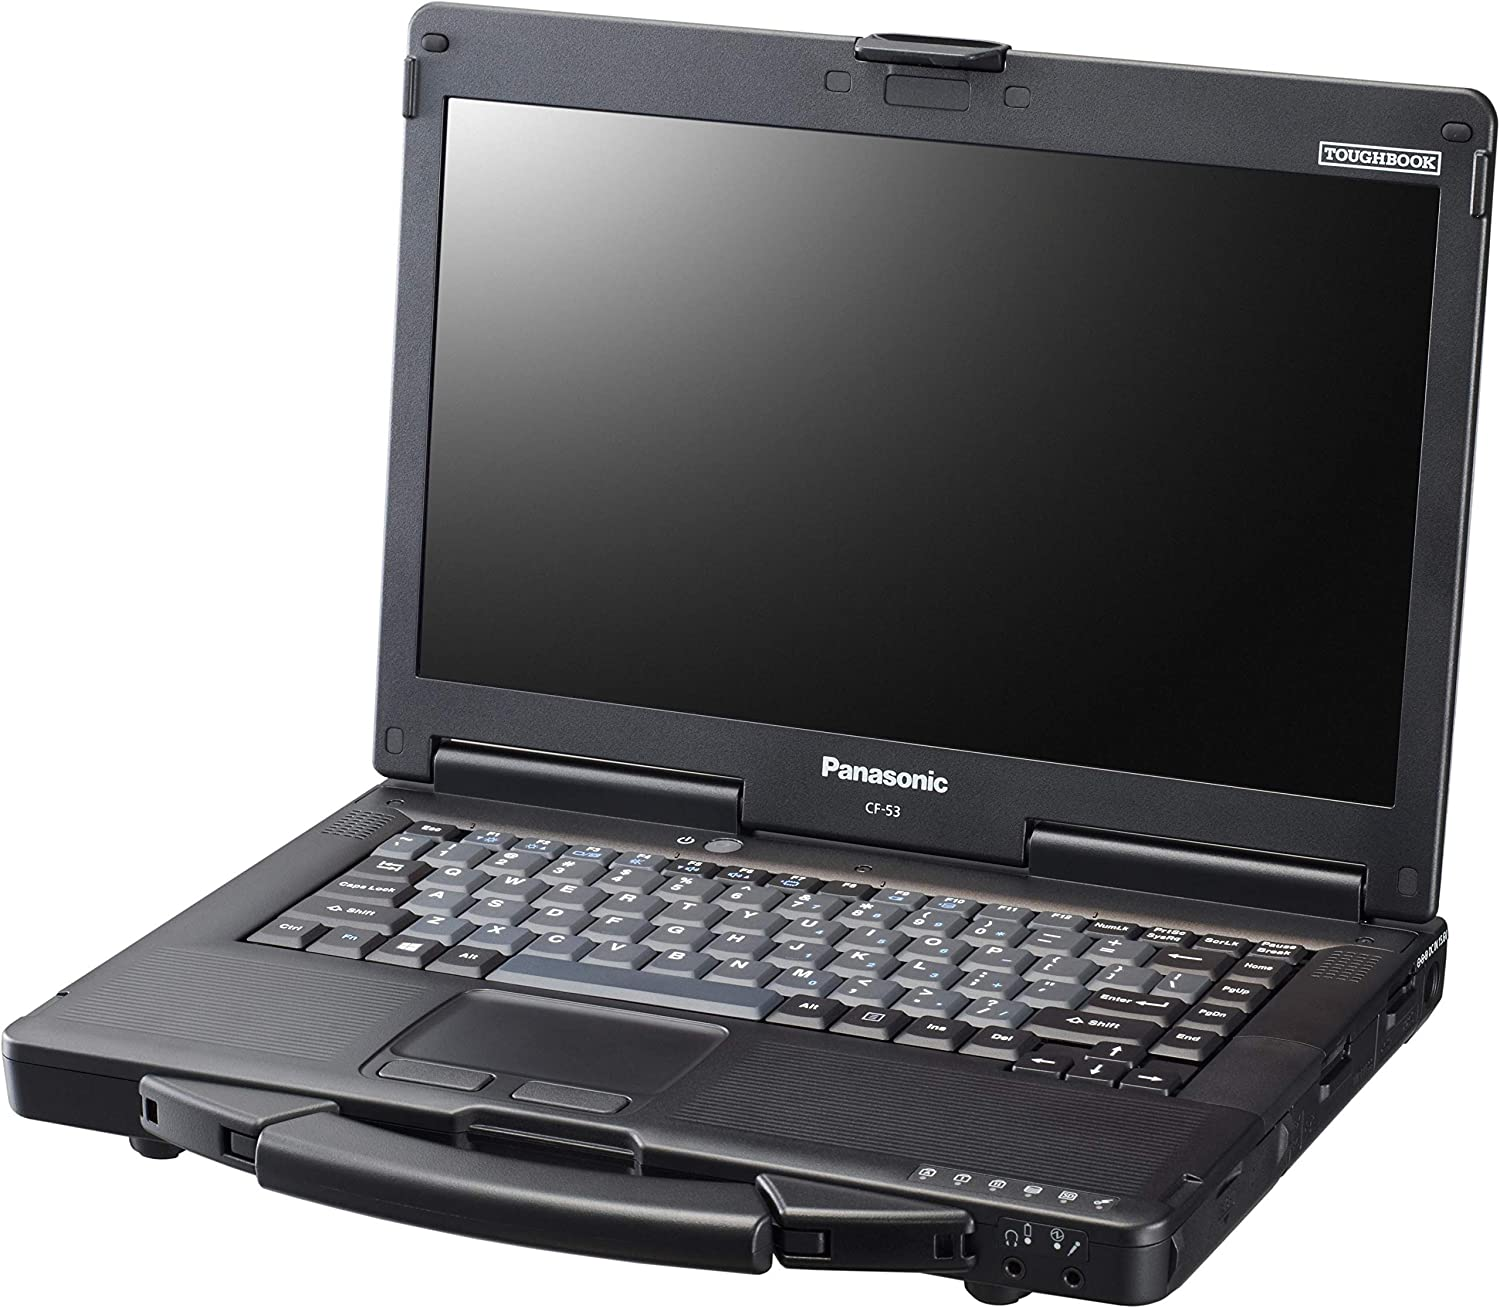 "Panasonic Toughbook CF-53 MK4, i5-4310M @2.00GHz, 14"" HD Touchscreen, 16GB, 1TB SSD, Windows 10 Pro, WiFi, Bluetooth, DVD (Renewed)"